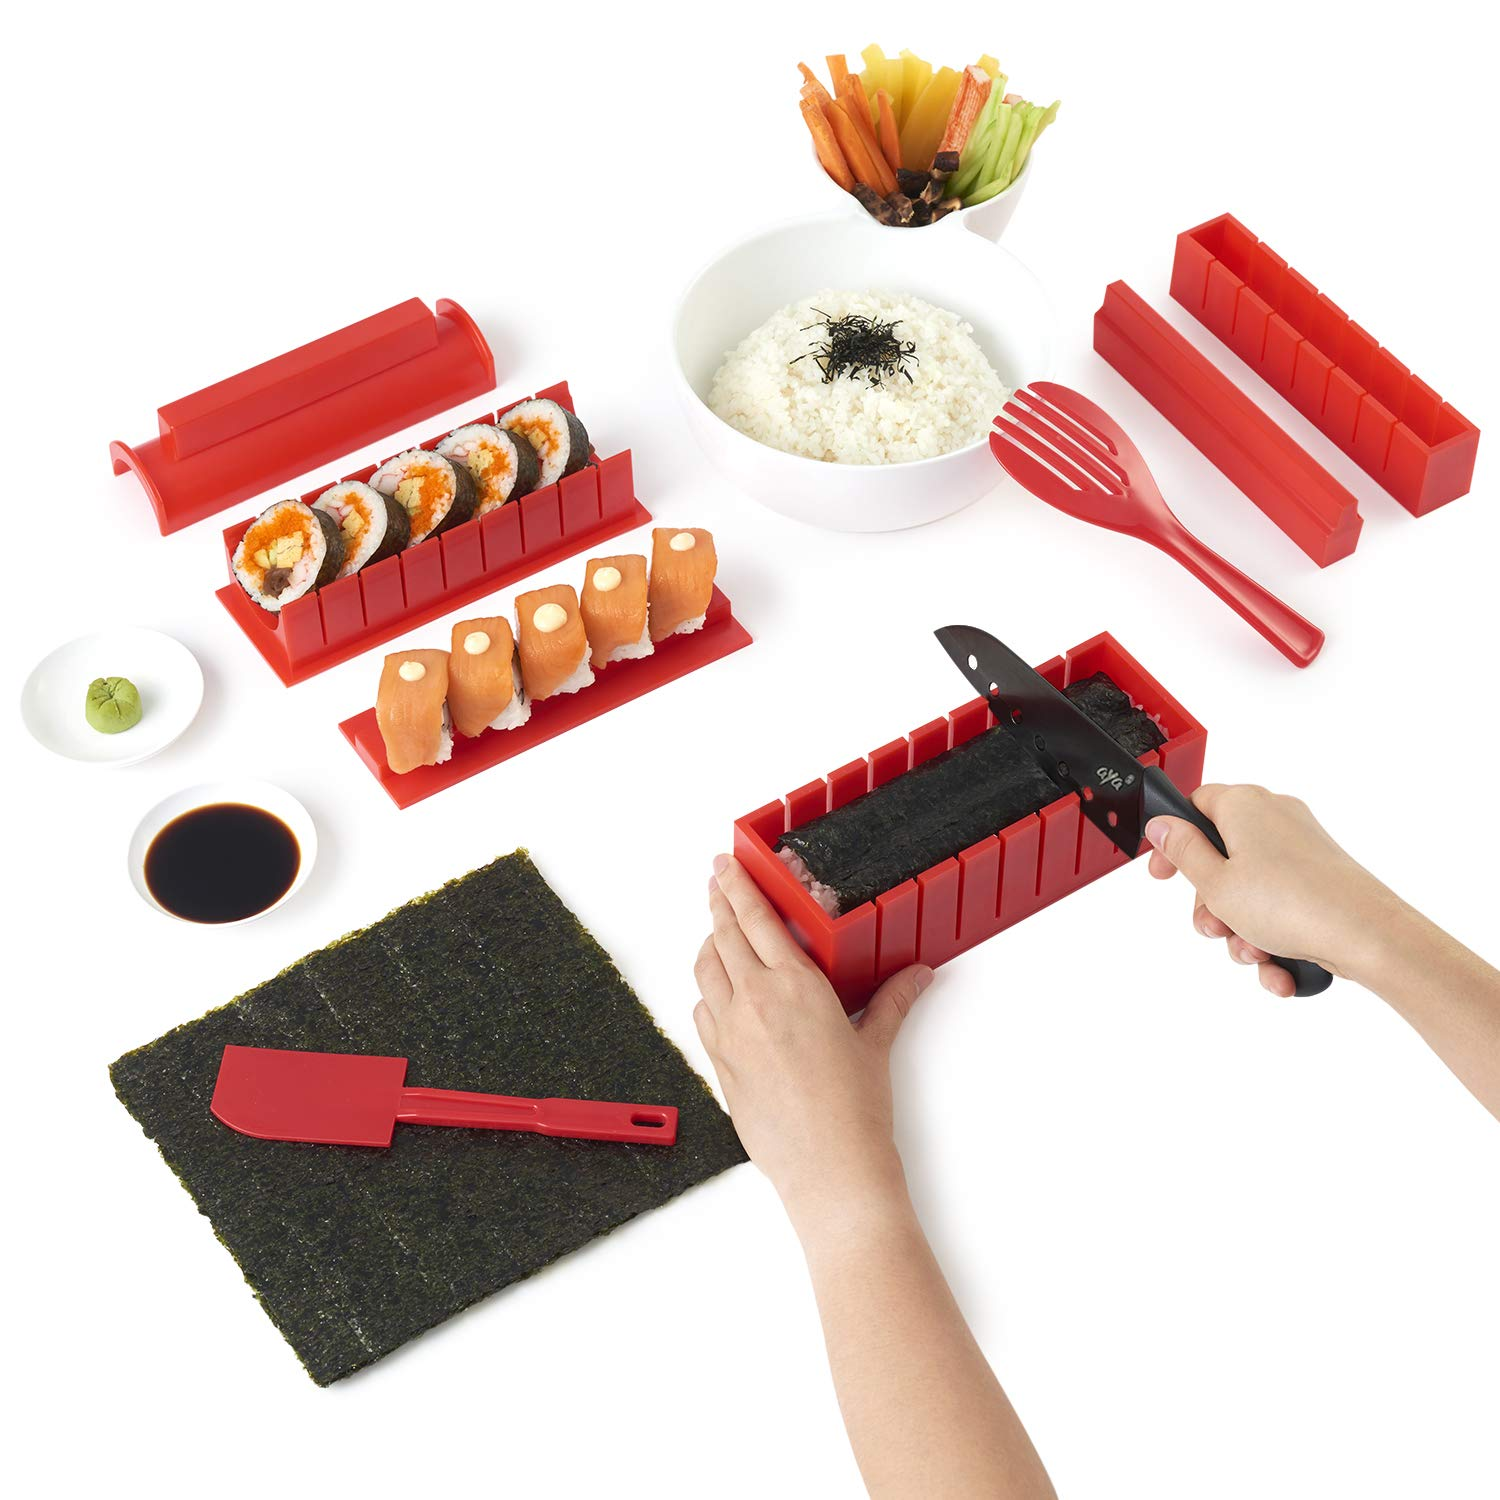 Sushi Making Kit - Original AYA Sushi Maker Deluxe Exclusive Online Video Tutorials Complete with Sushi Knife 11 Piece DIY Sushi Set - Easy and Fun - Sushi Rolls - Maki Rolls by SushiAya (Image #1)